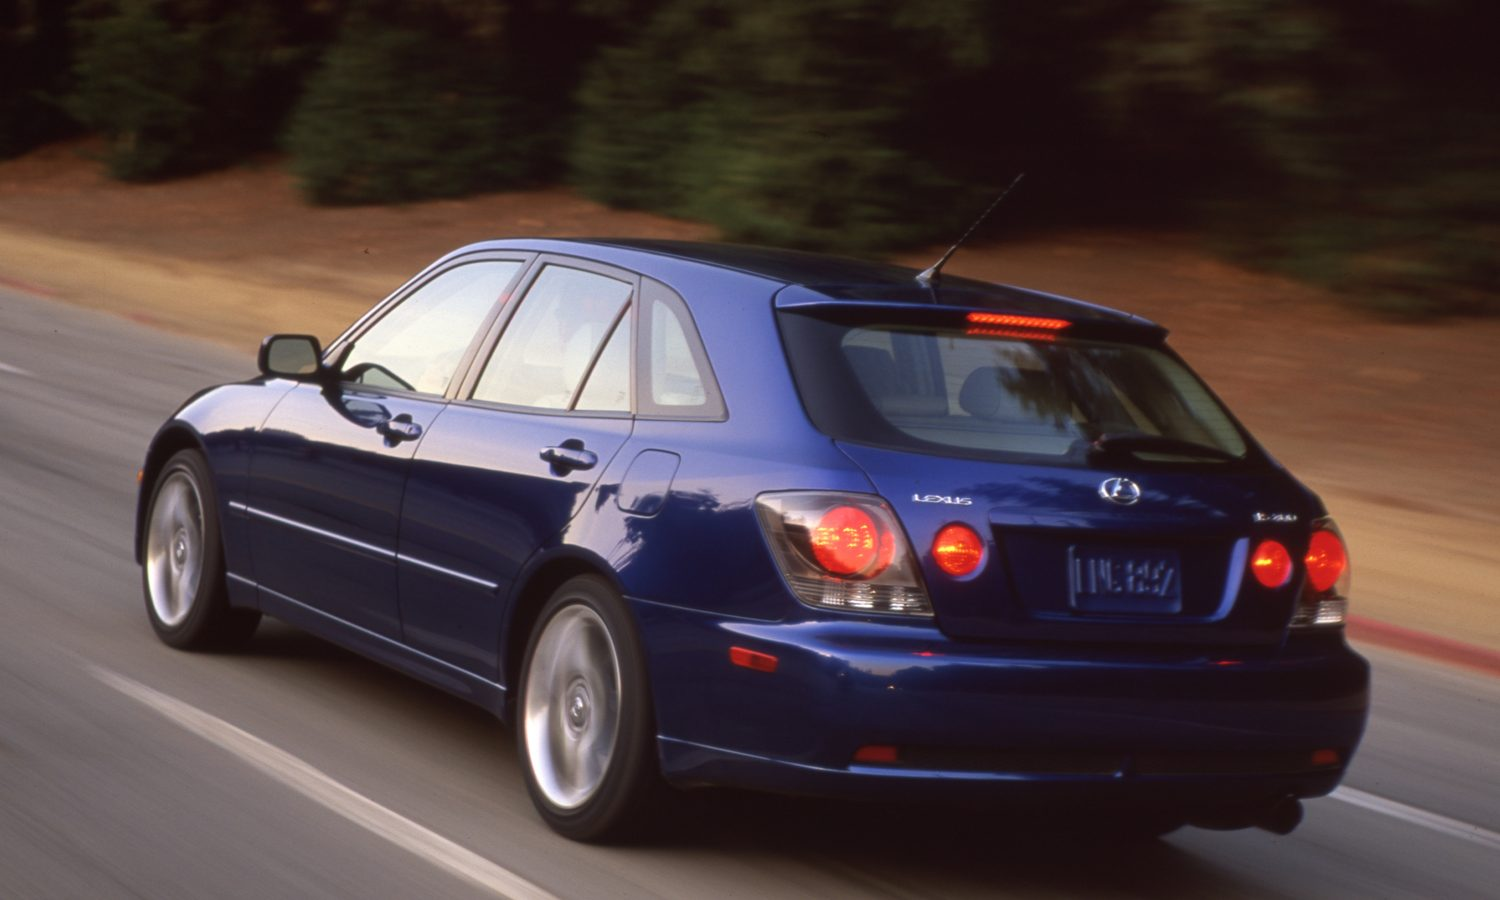 Lexus IS Icons: 2002 IS 300 SportCross